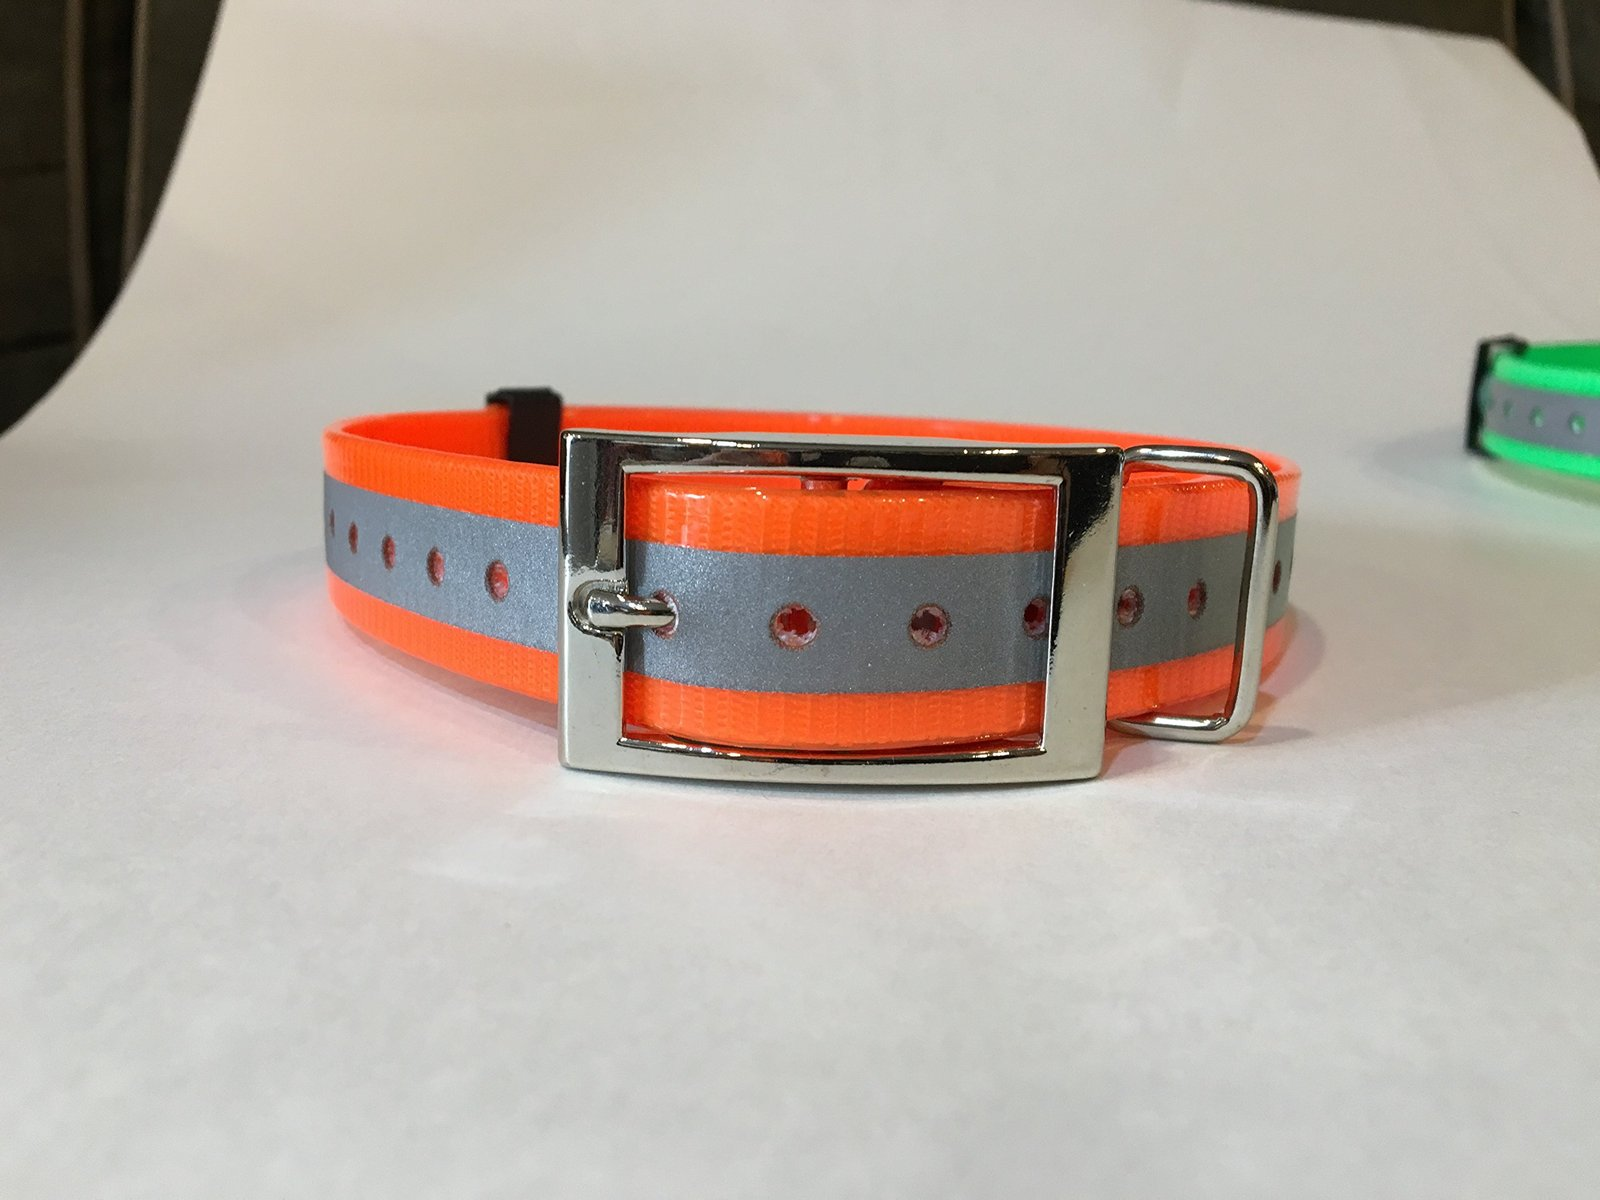 "SparkyPetCo 3/4"" Reflective Orange Square Buckle High Flex Reflective Dog Str..."